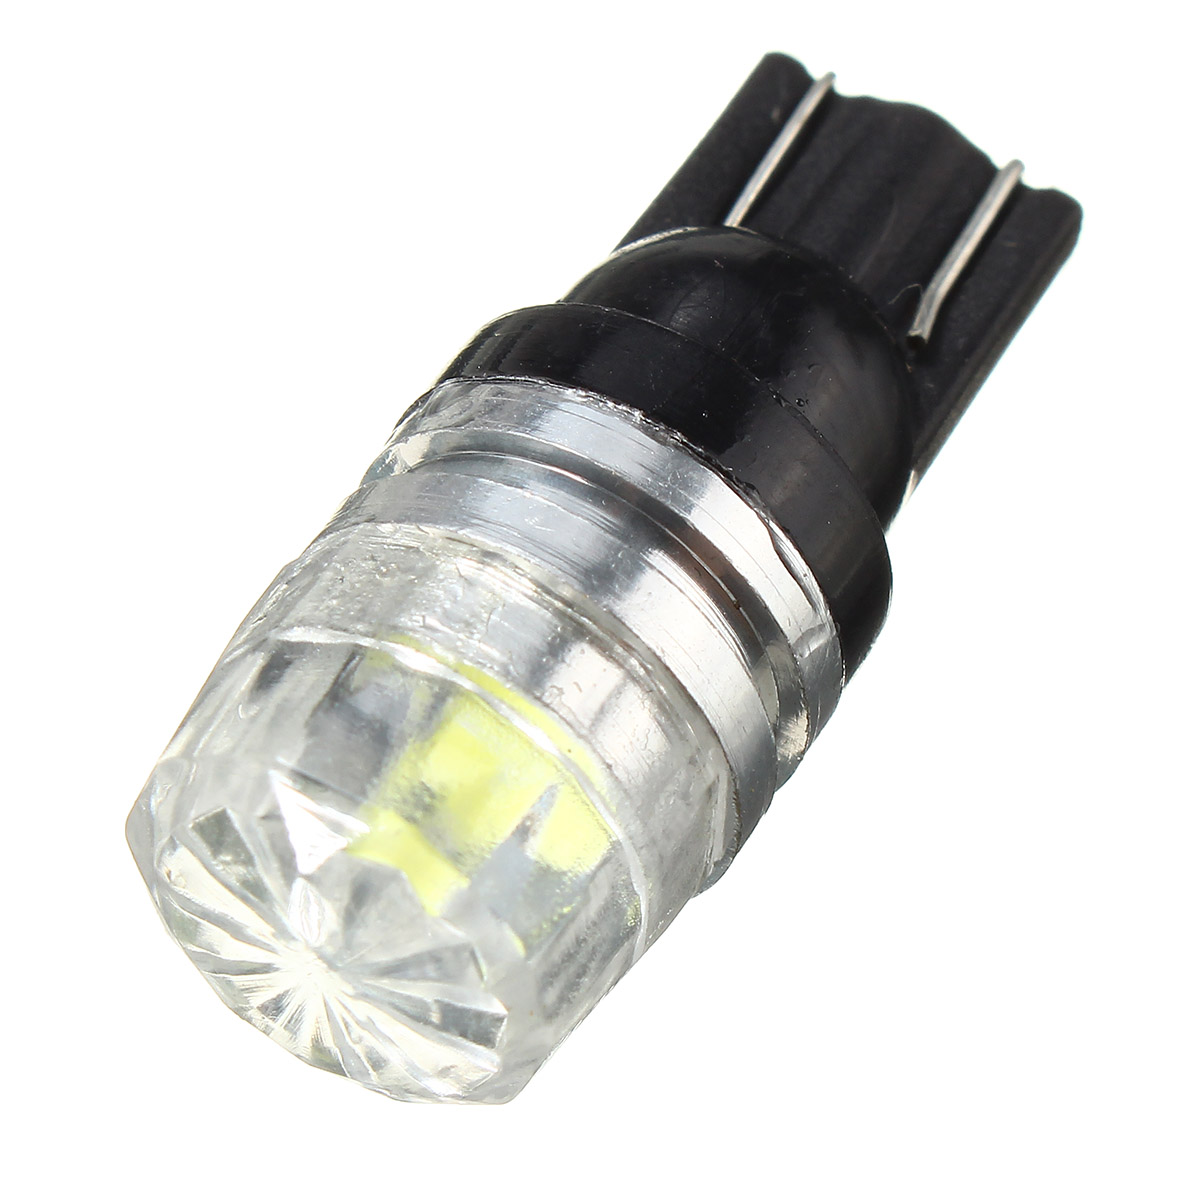 T10 W5W COB LED Side Marker Wedge Lights Canbus Reading Bulb 12V 1.5W 40LM 6000K